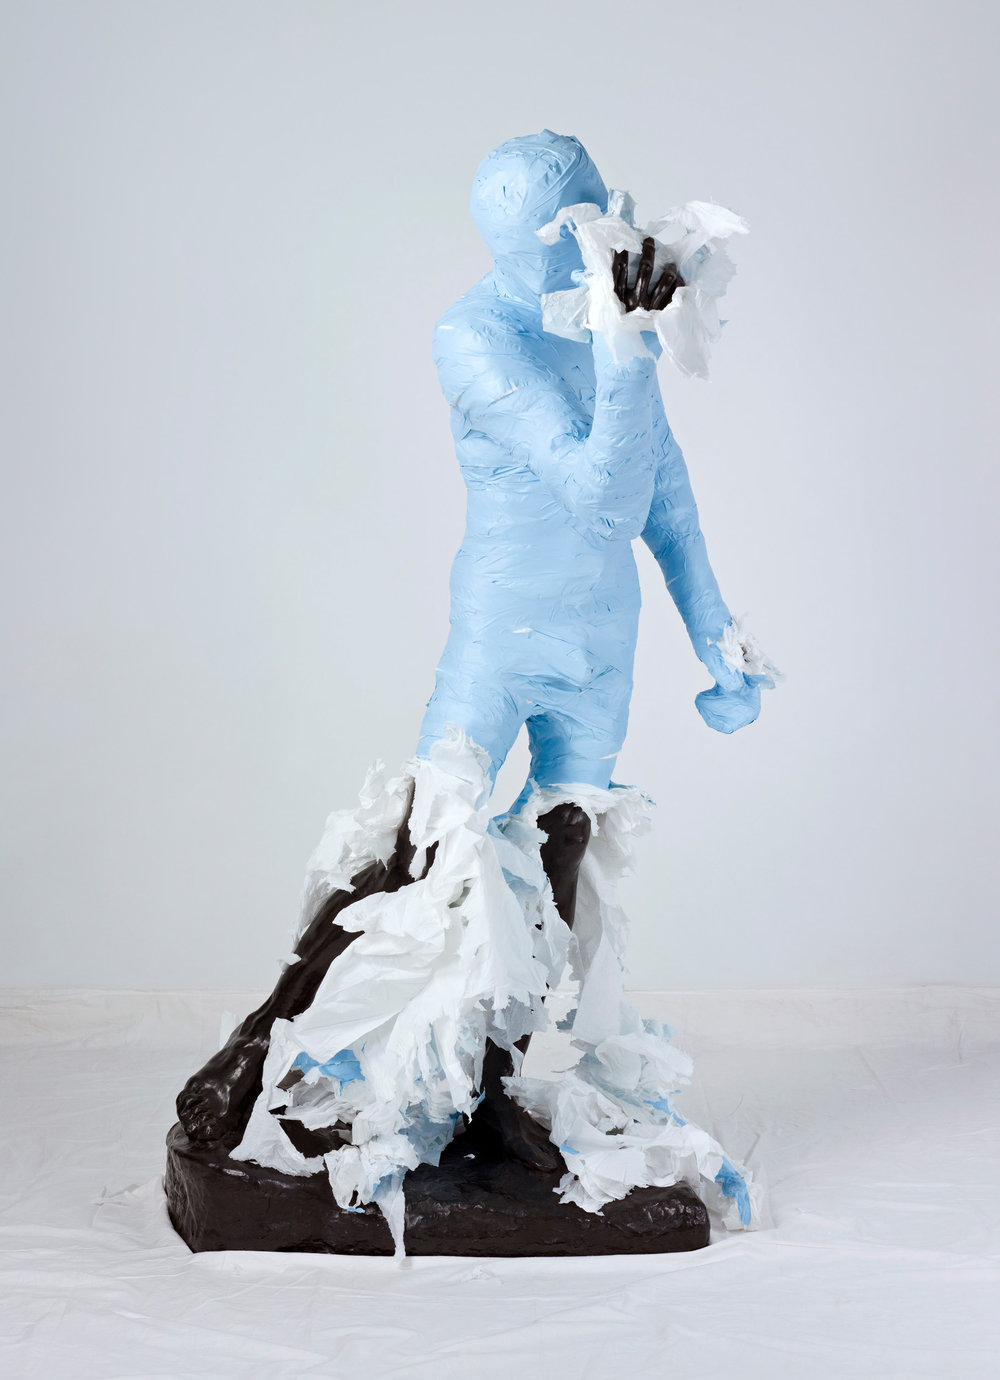 Unwrapping Rodin (Blue) 4   2010, colour photograph 127 x 175 cm / 50 x 69 in. Edition of 2